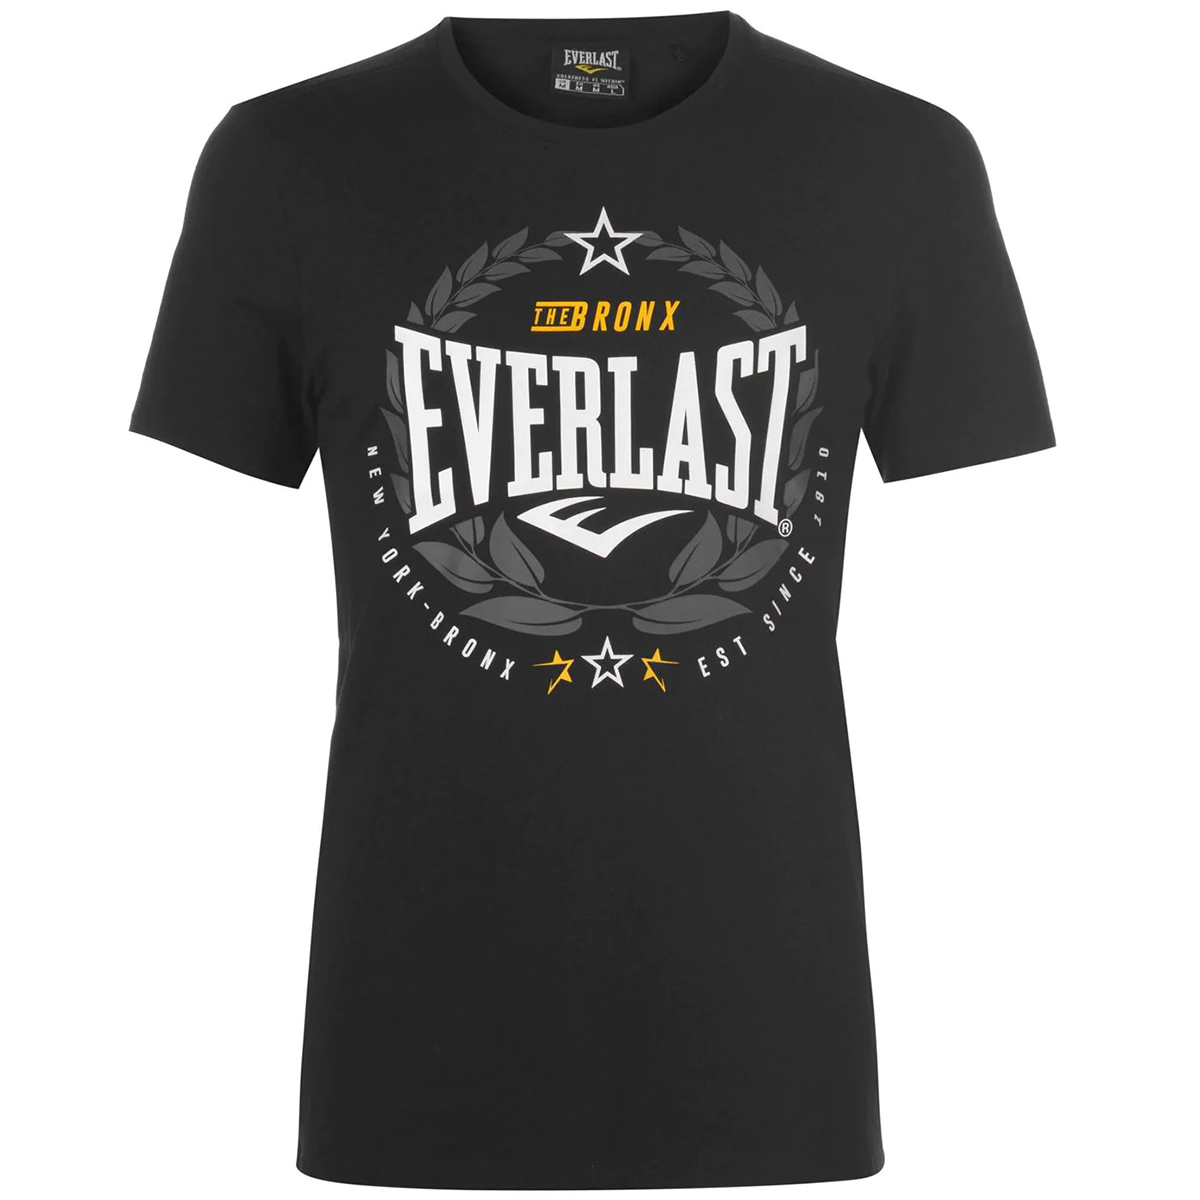 Everlast Men's Laurel Short-Sleeve Tee - Black, 3XL